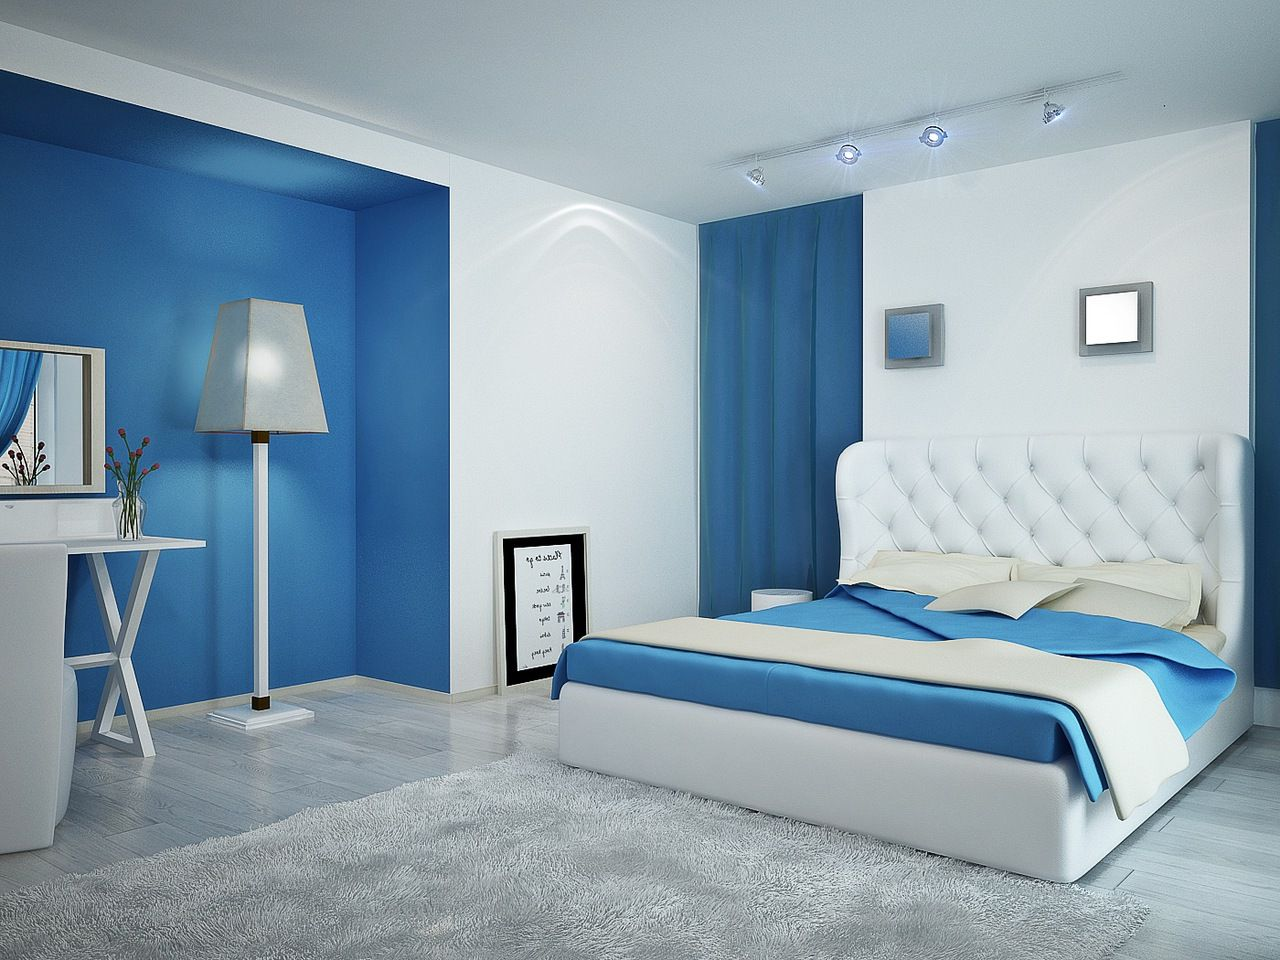 Modern White And Blue Bedroom bl/grey borders! !blue grey sheer curtains, grey shelves, blue